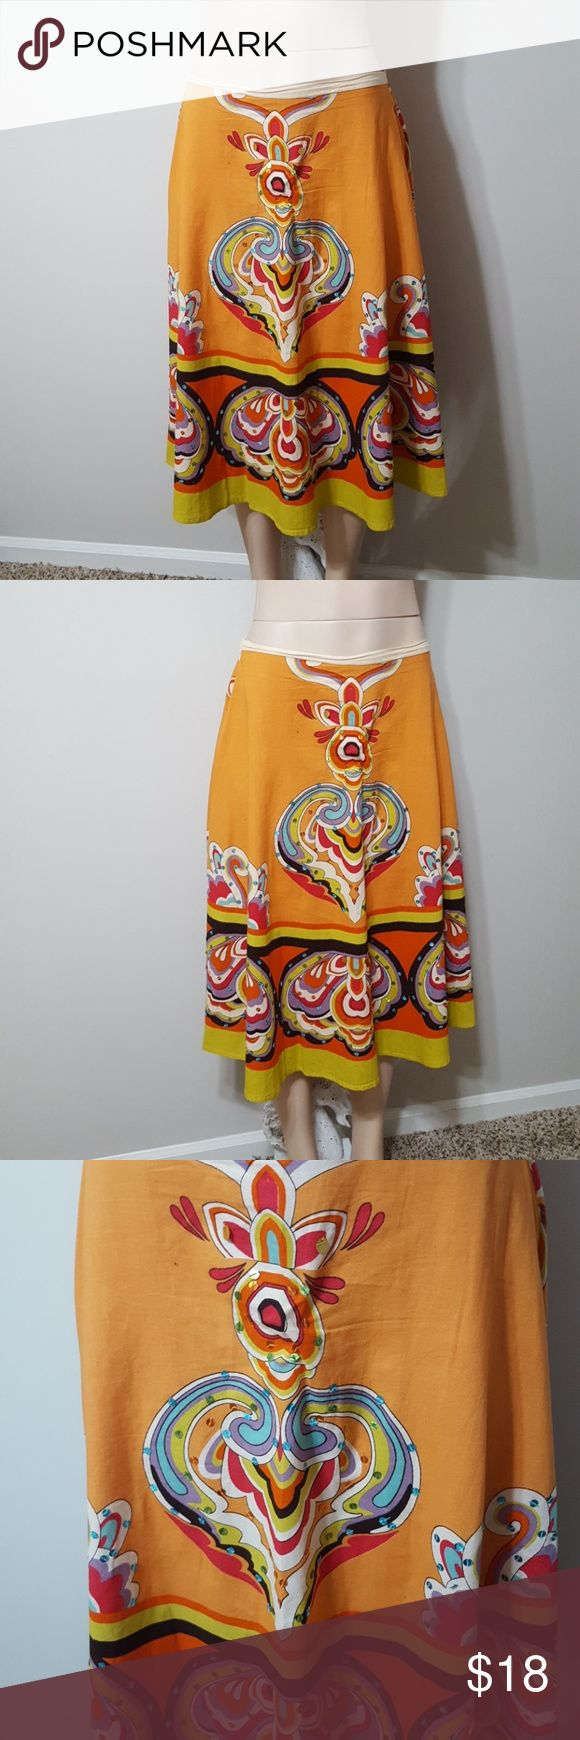 JAQULINE DESIGN STUDIO BOHO SEQUIN PRINT SKIRT! JAQULINE DESIGN STUDIO BOHO SEQUIN PRINT SKIRT! Love this skirt! Colorful print design. Sequin accents on front. Elastic band in back to allow stretch if need be. Side zipper. Perfect condition! 100% cotton. Jaquline design studio Skirts Midi